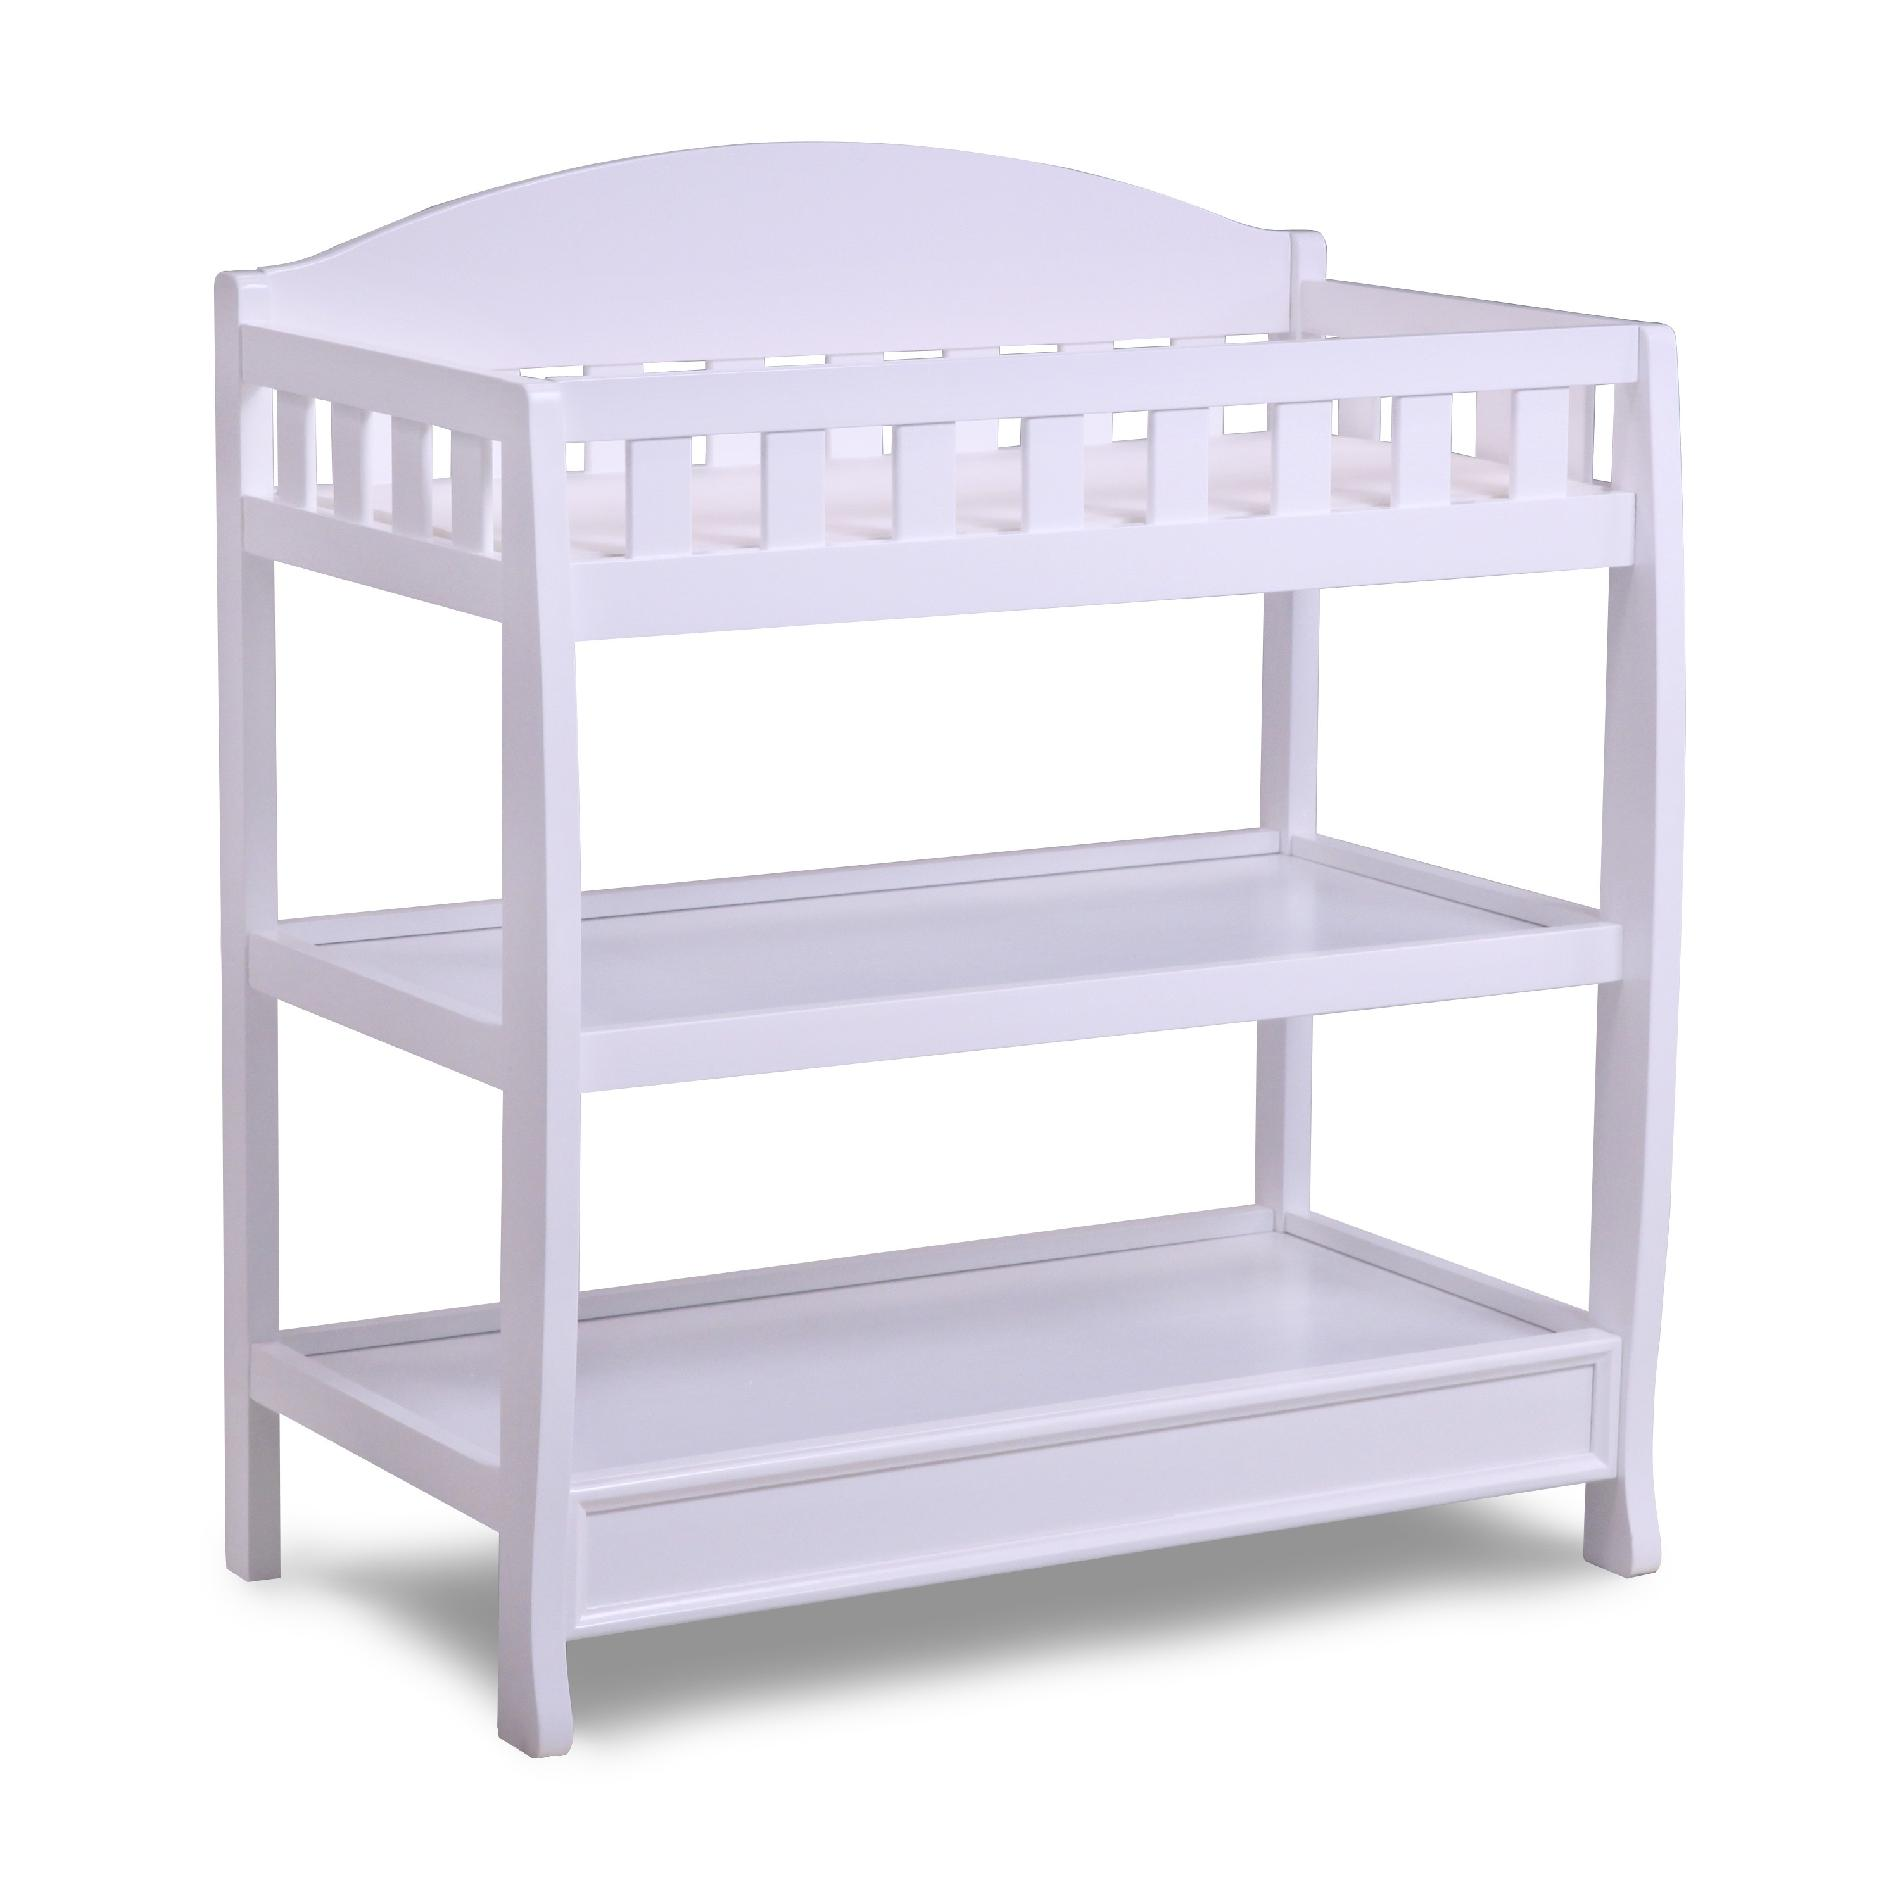 Baby Wickeltisch Delta Children White Changing Table With Pad - Baby - Baby